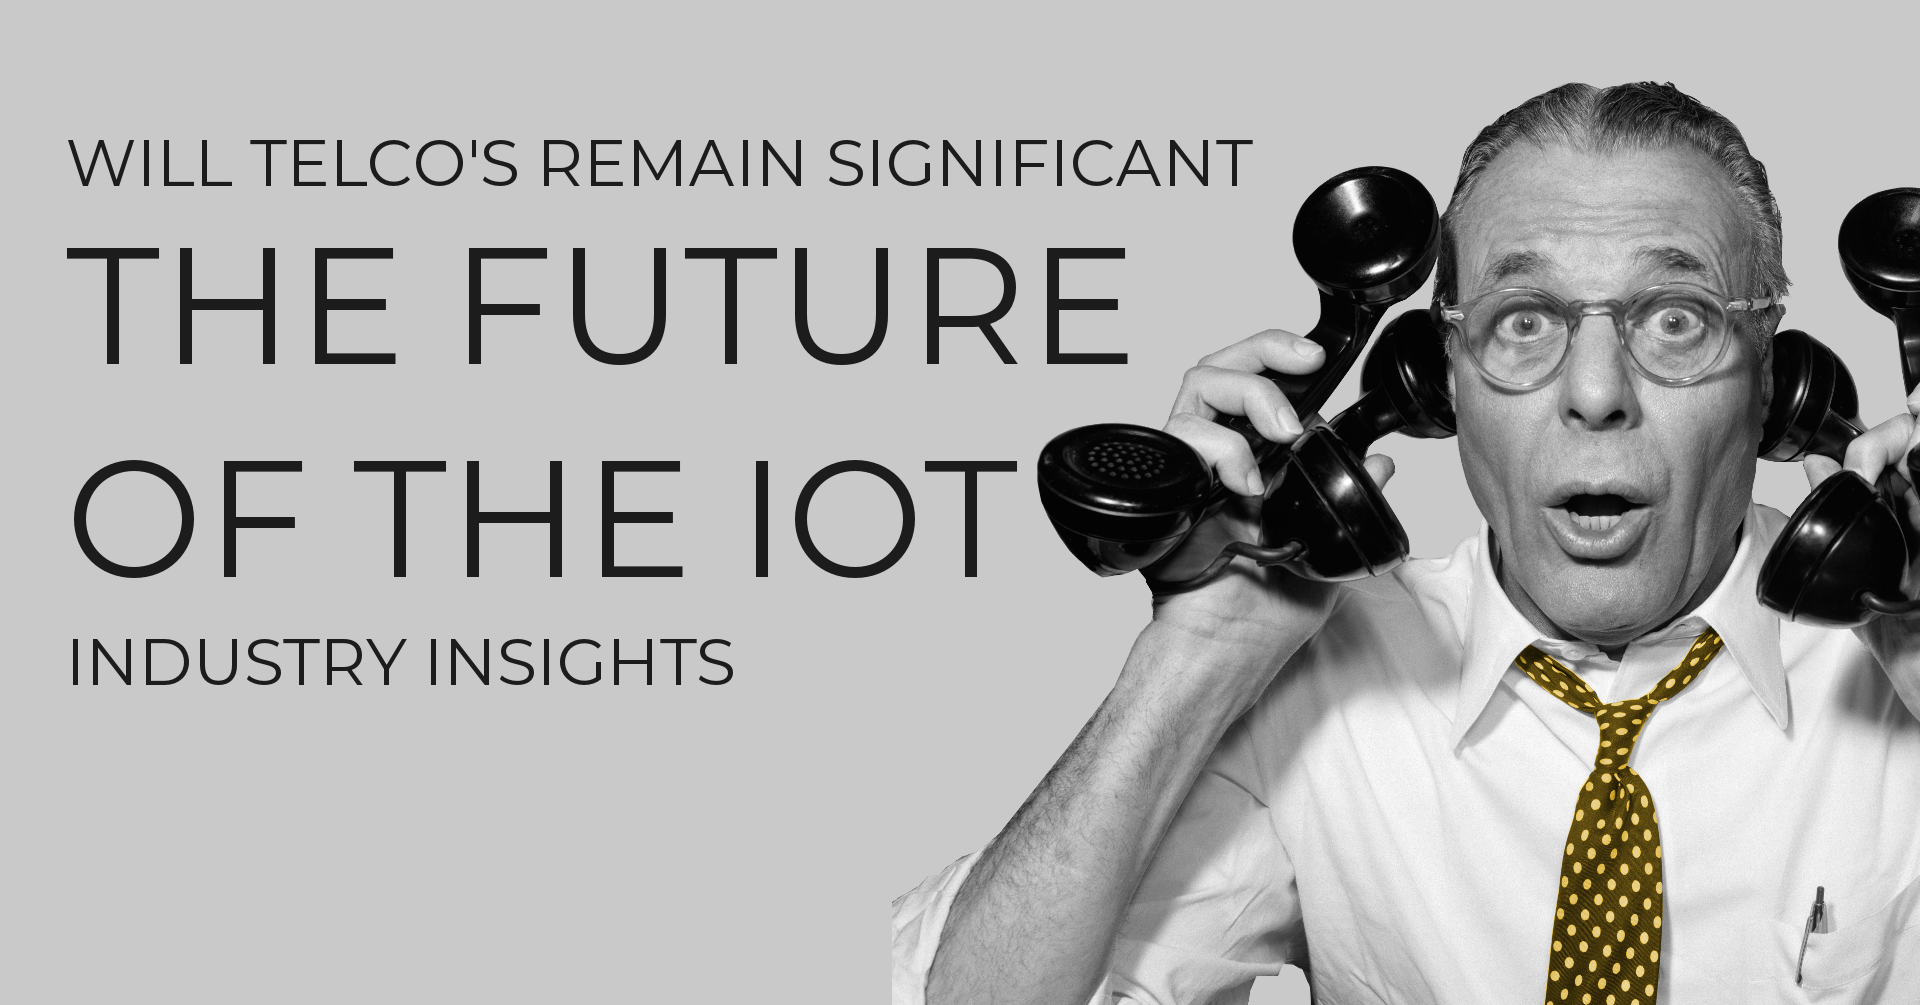 FutureOfIoT